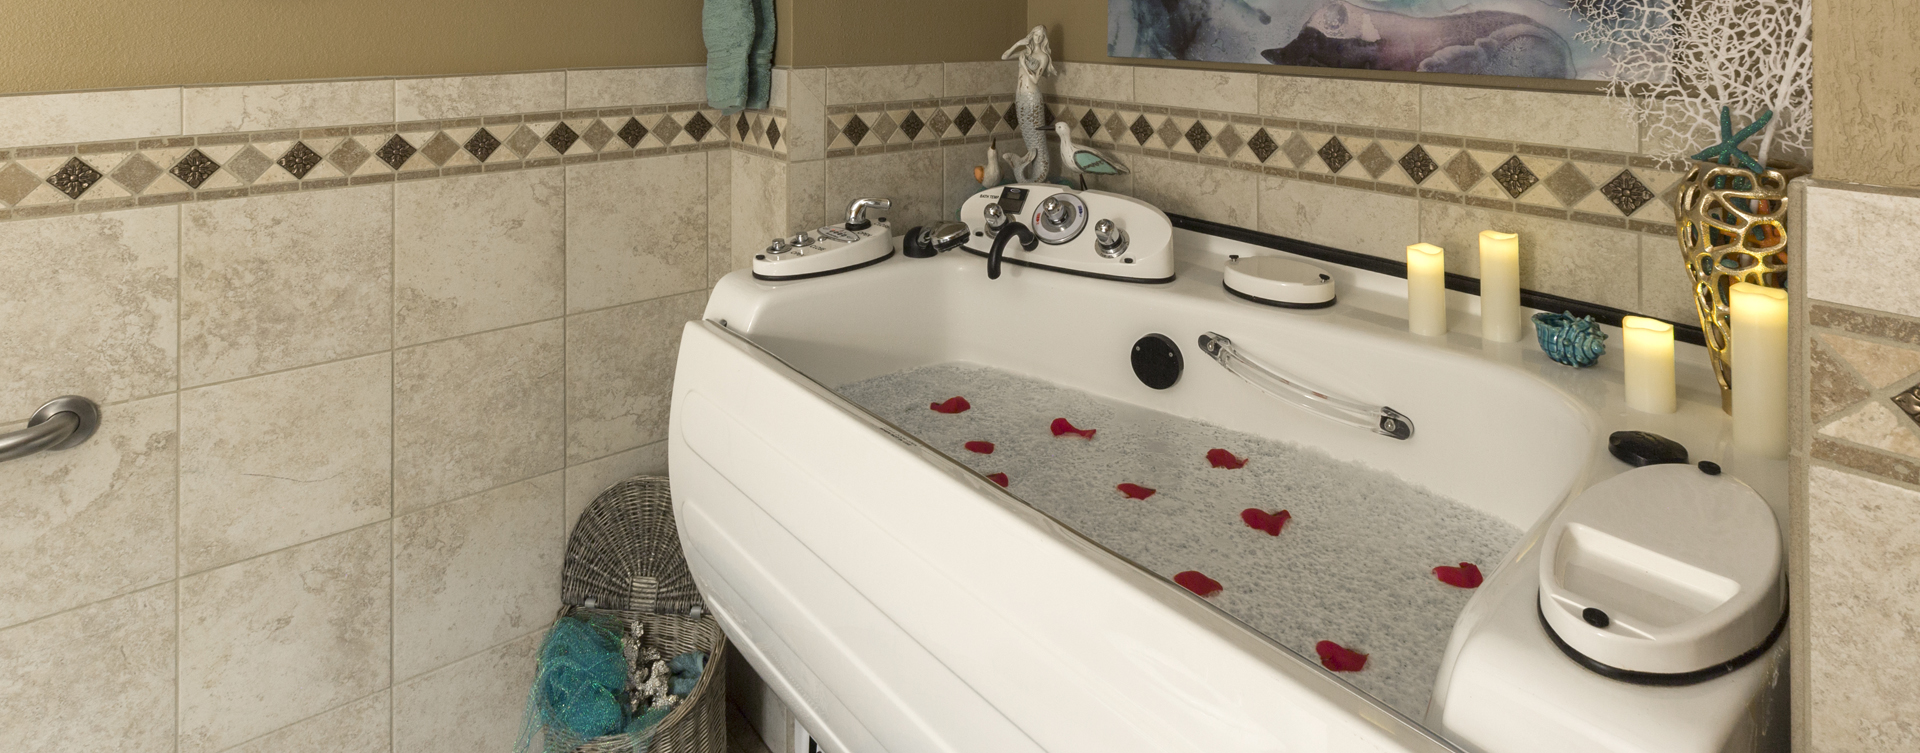 Our whirlpool bathtub creates a spa-like environment tailored to enhance your relaxation and enjoyment at Bickford of Omaha - Hickory